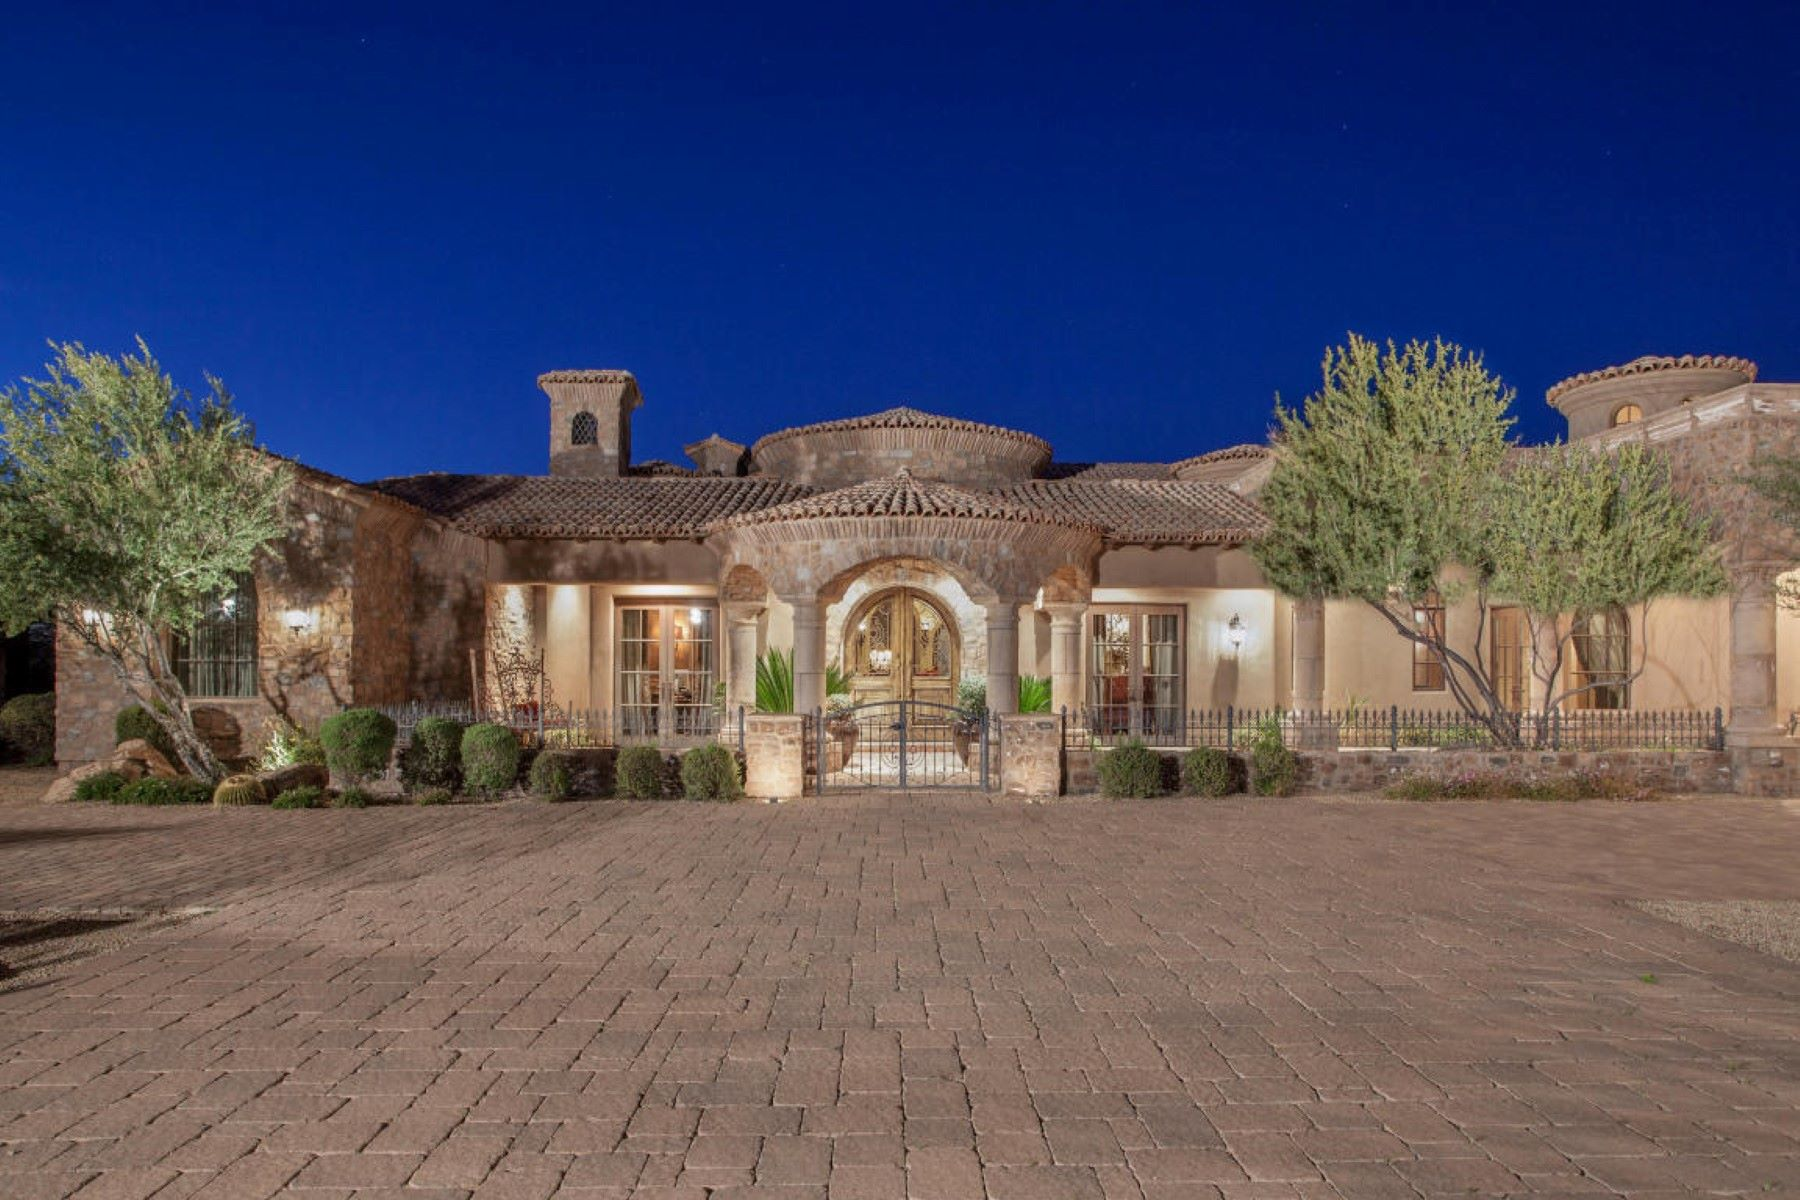 独户住宅 为 销售 在 Incredible sprawling estate situated on acres of beautiful Sonoran Desert 8143 E Stagecoach Pass 斯科茨代尔, 亚利桑那州, 85266 美国